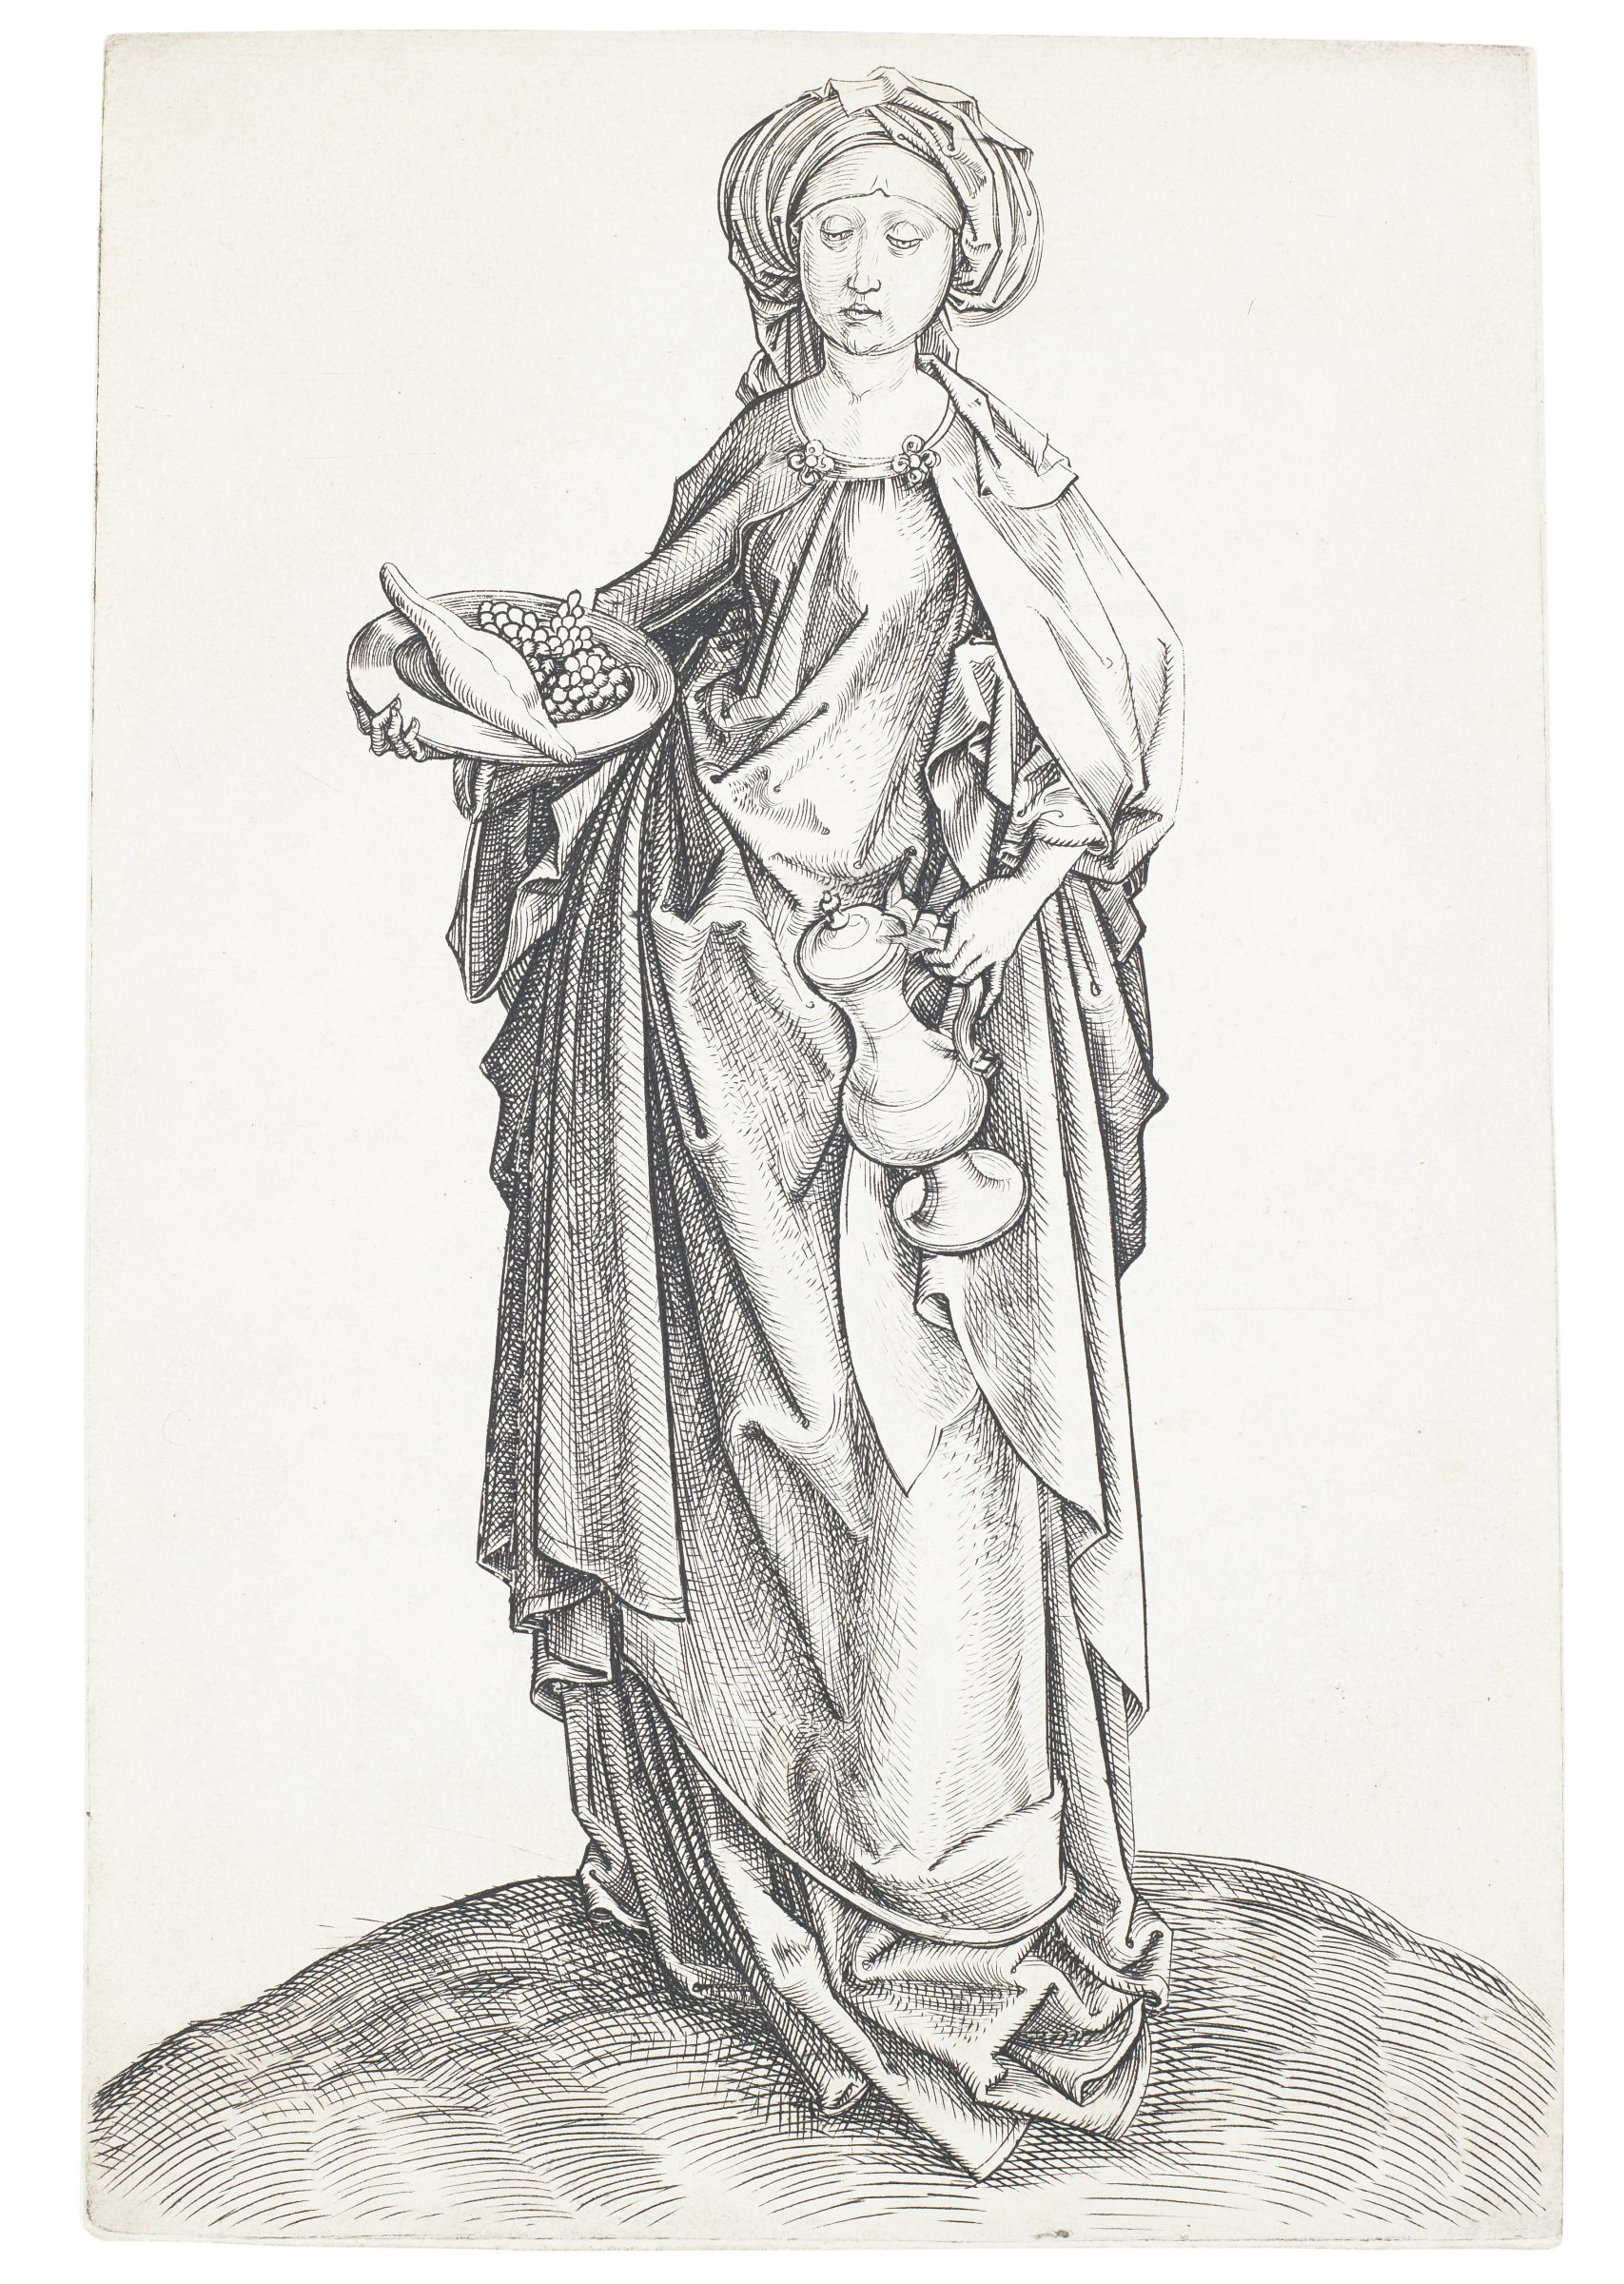 St. Elizabeth is shown carrying a ewer and a platter with grapes and bread to give food and drink to the poor.